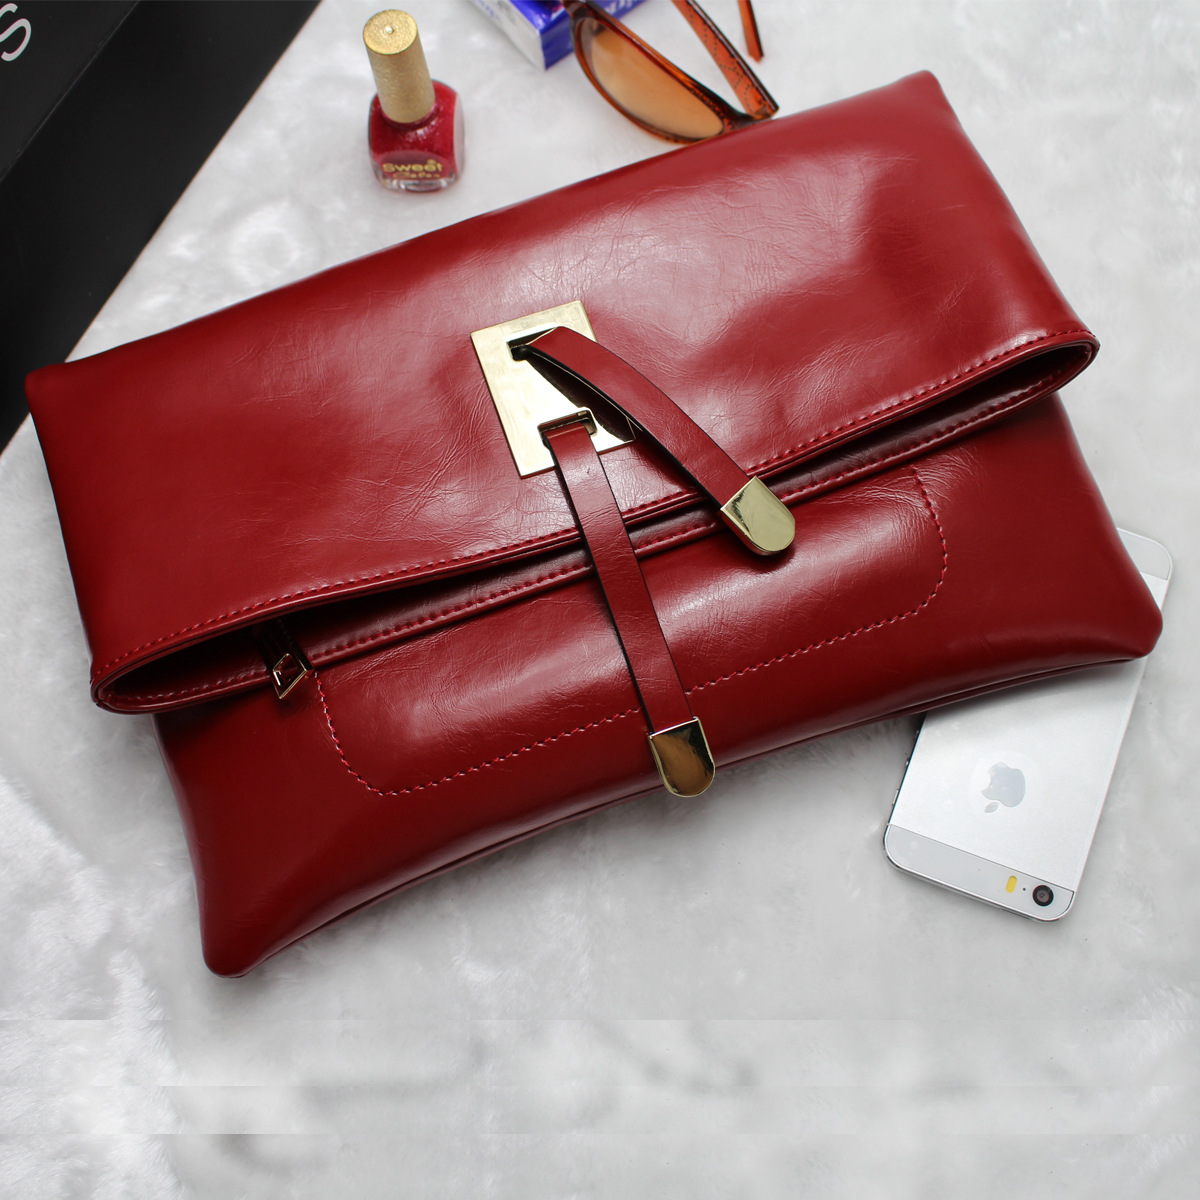 2017 New Famous Brand Oil Wax Genuine Leather Ladies Vintage Evening Bag Girl Day Clutch Hand Bag Women Shoulders Messenger Bag